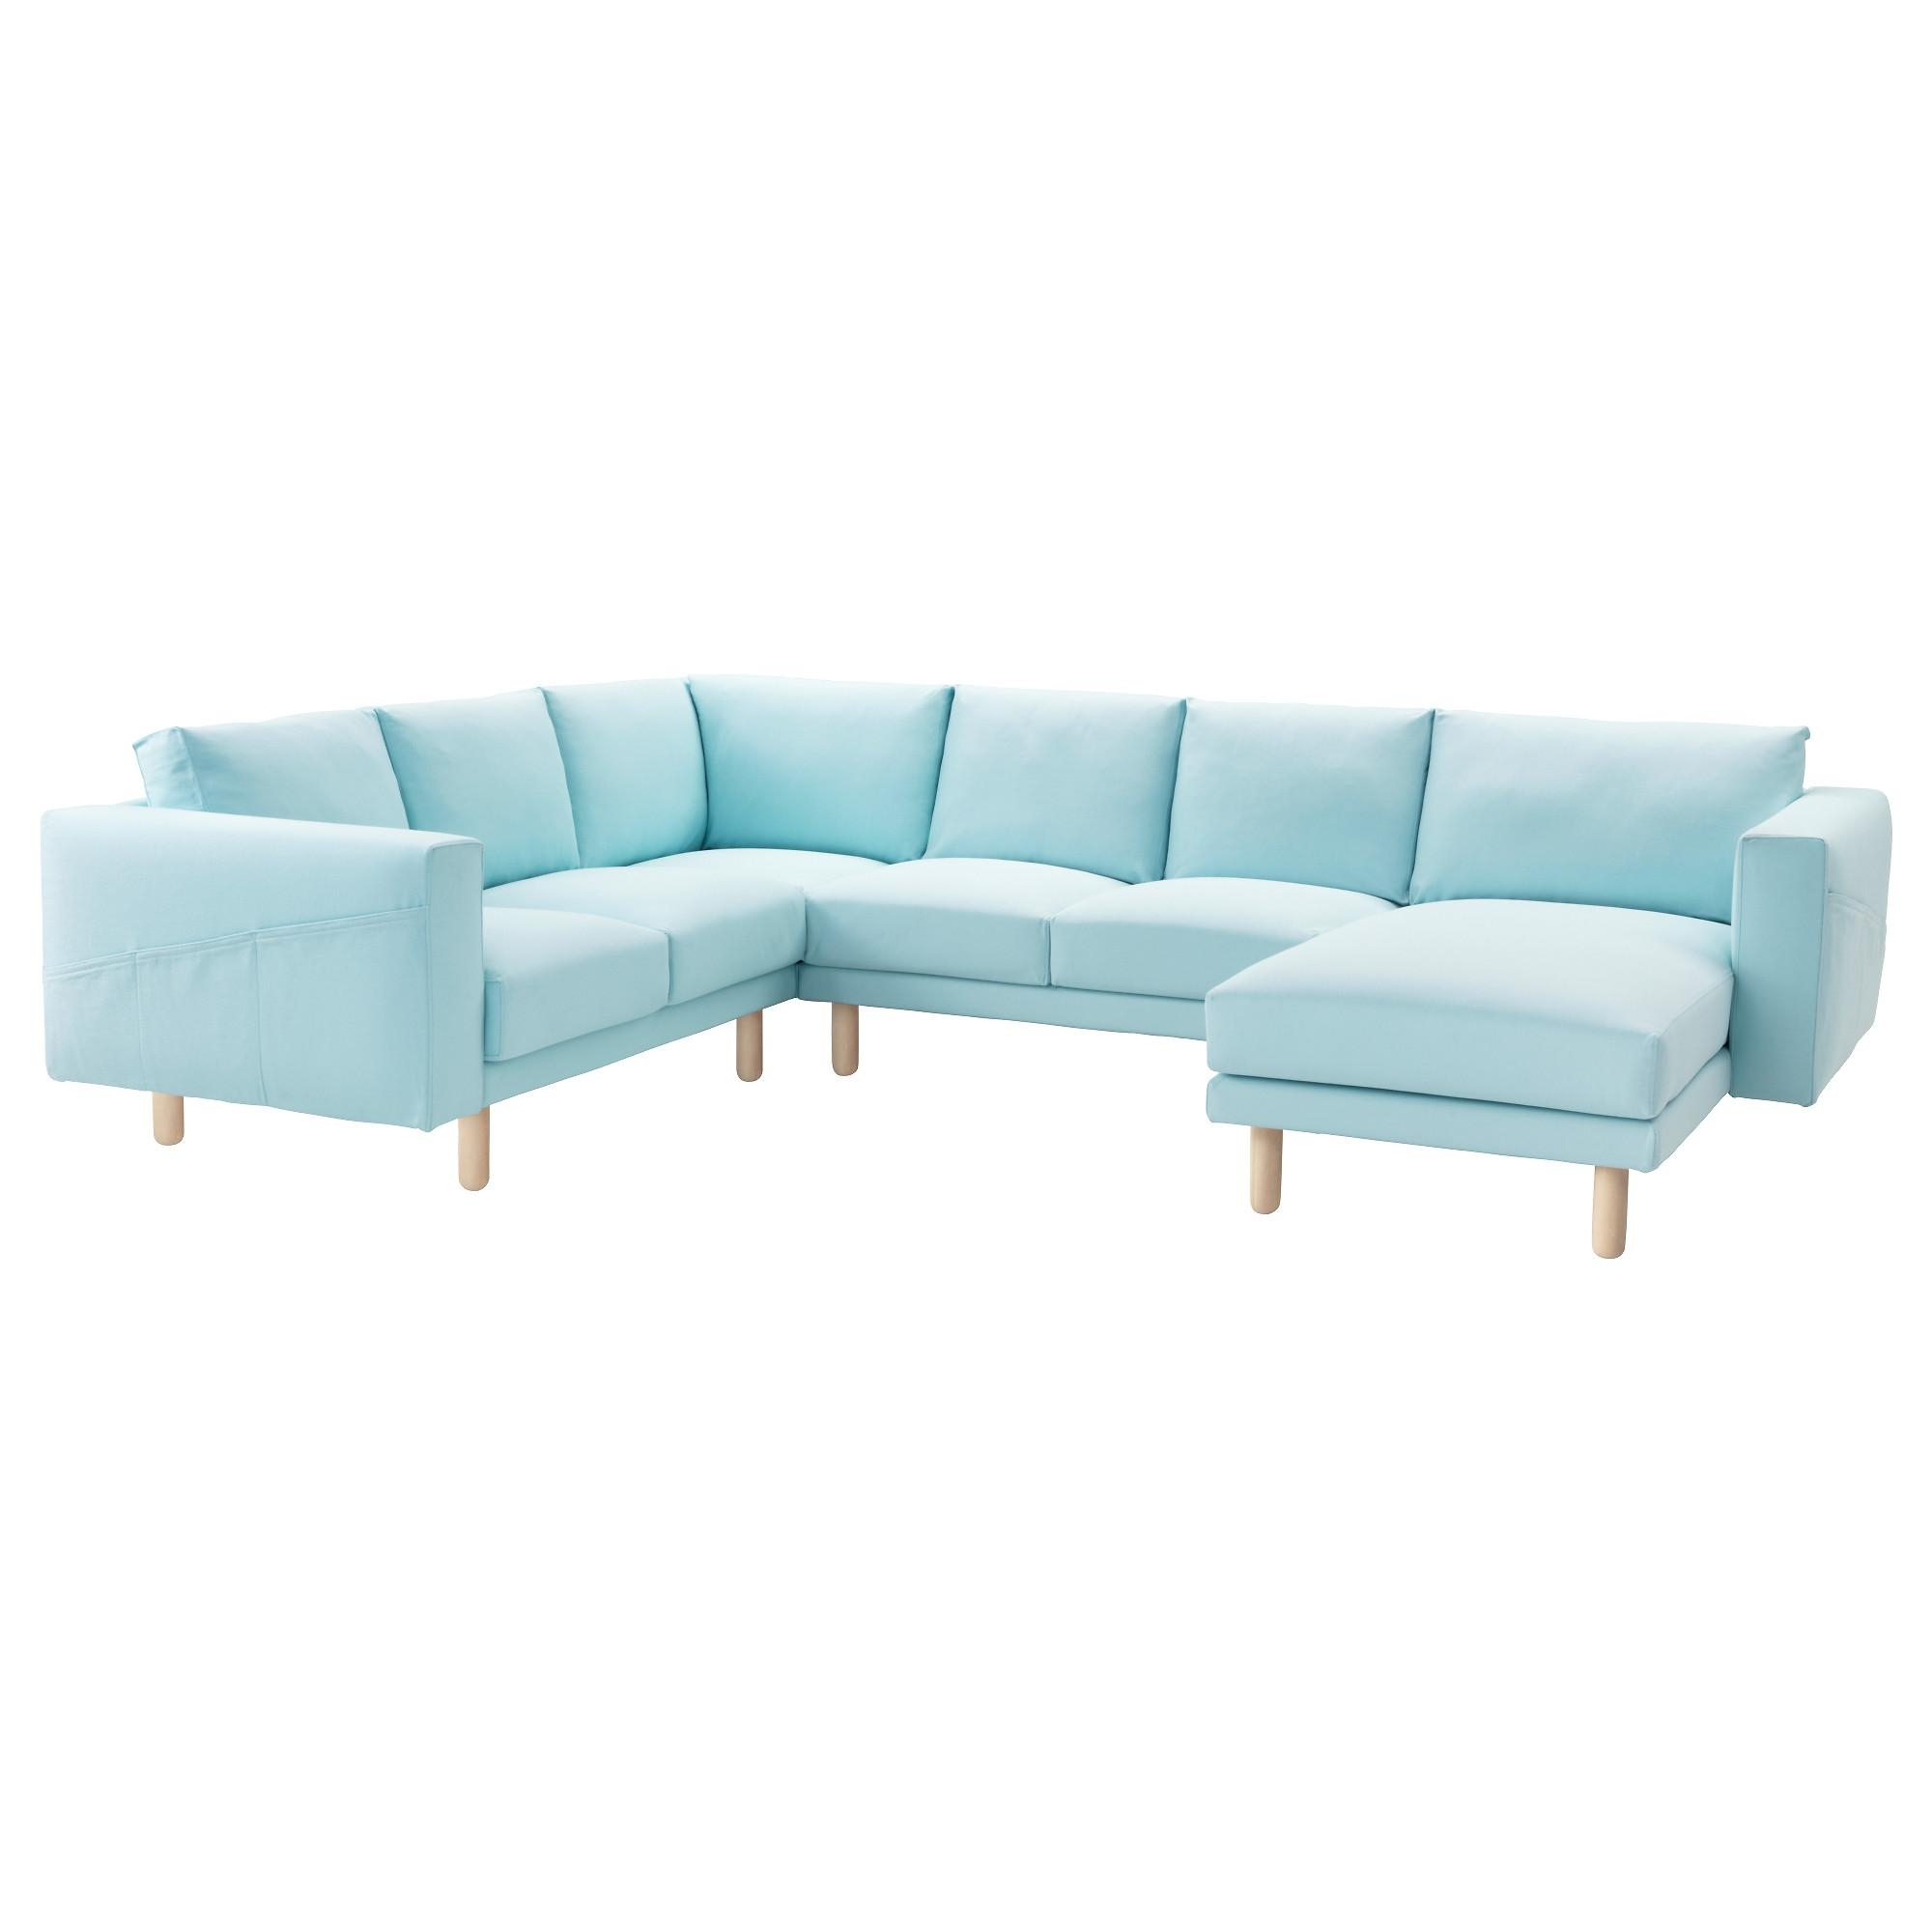 20 choices of corner sofas sofa ideas for Chaise longue style sofa